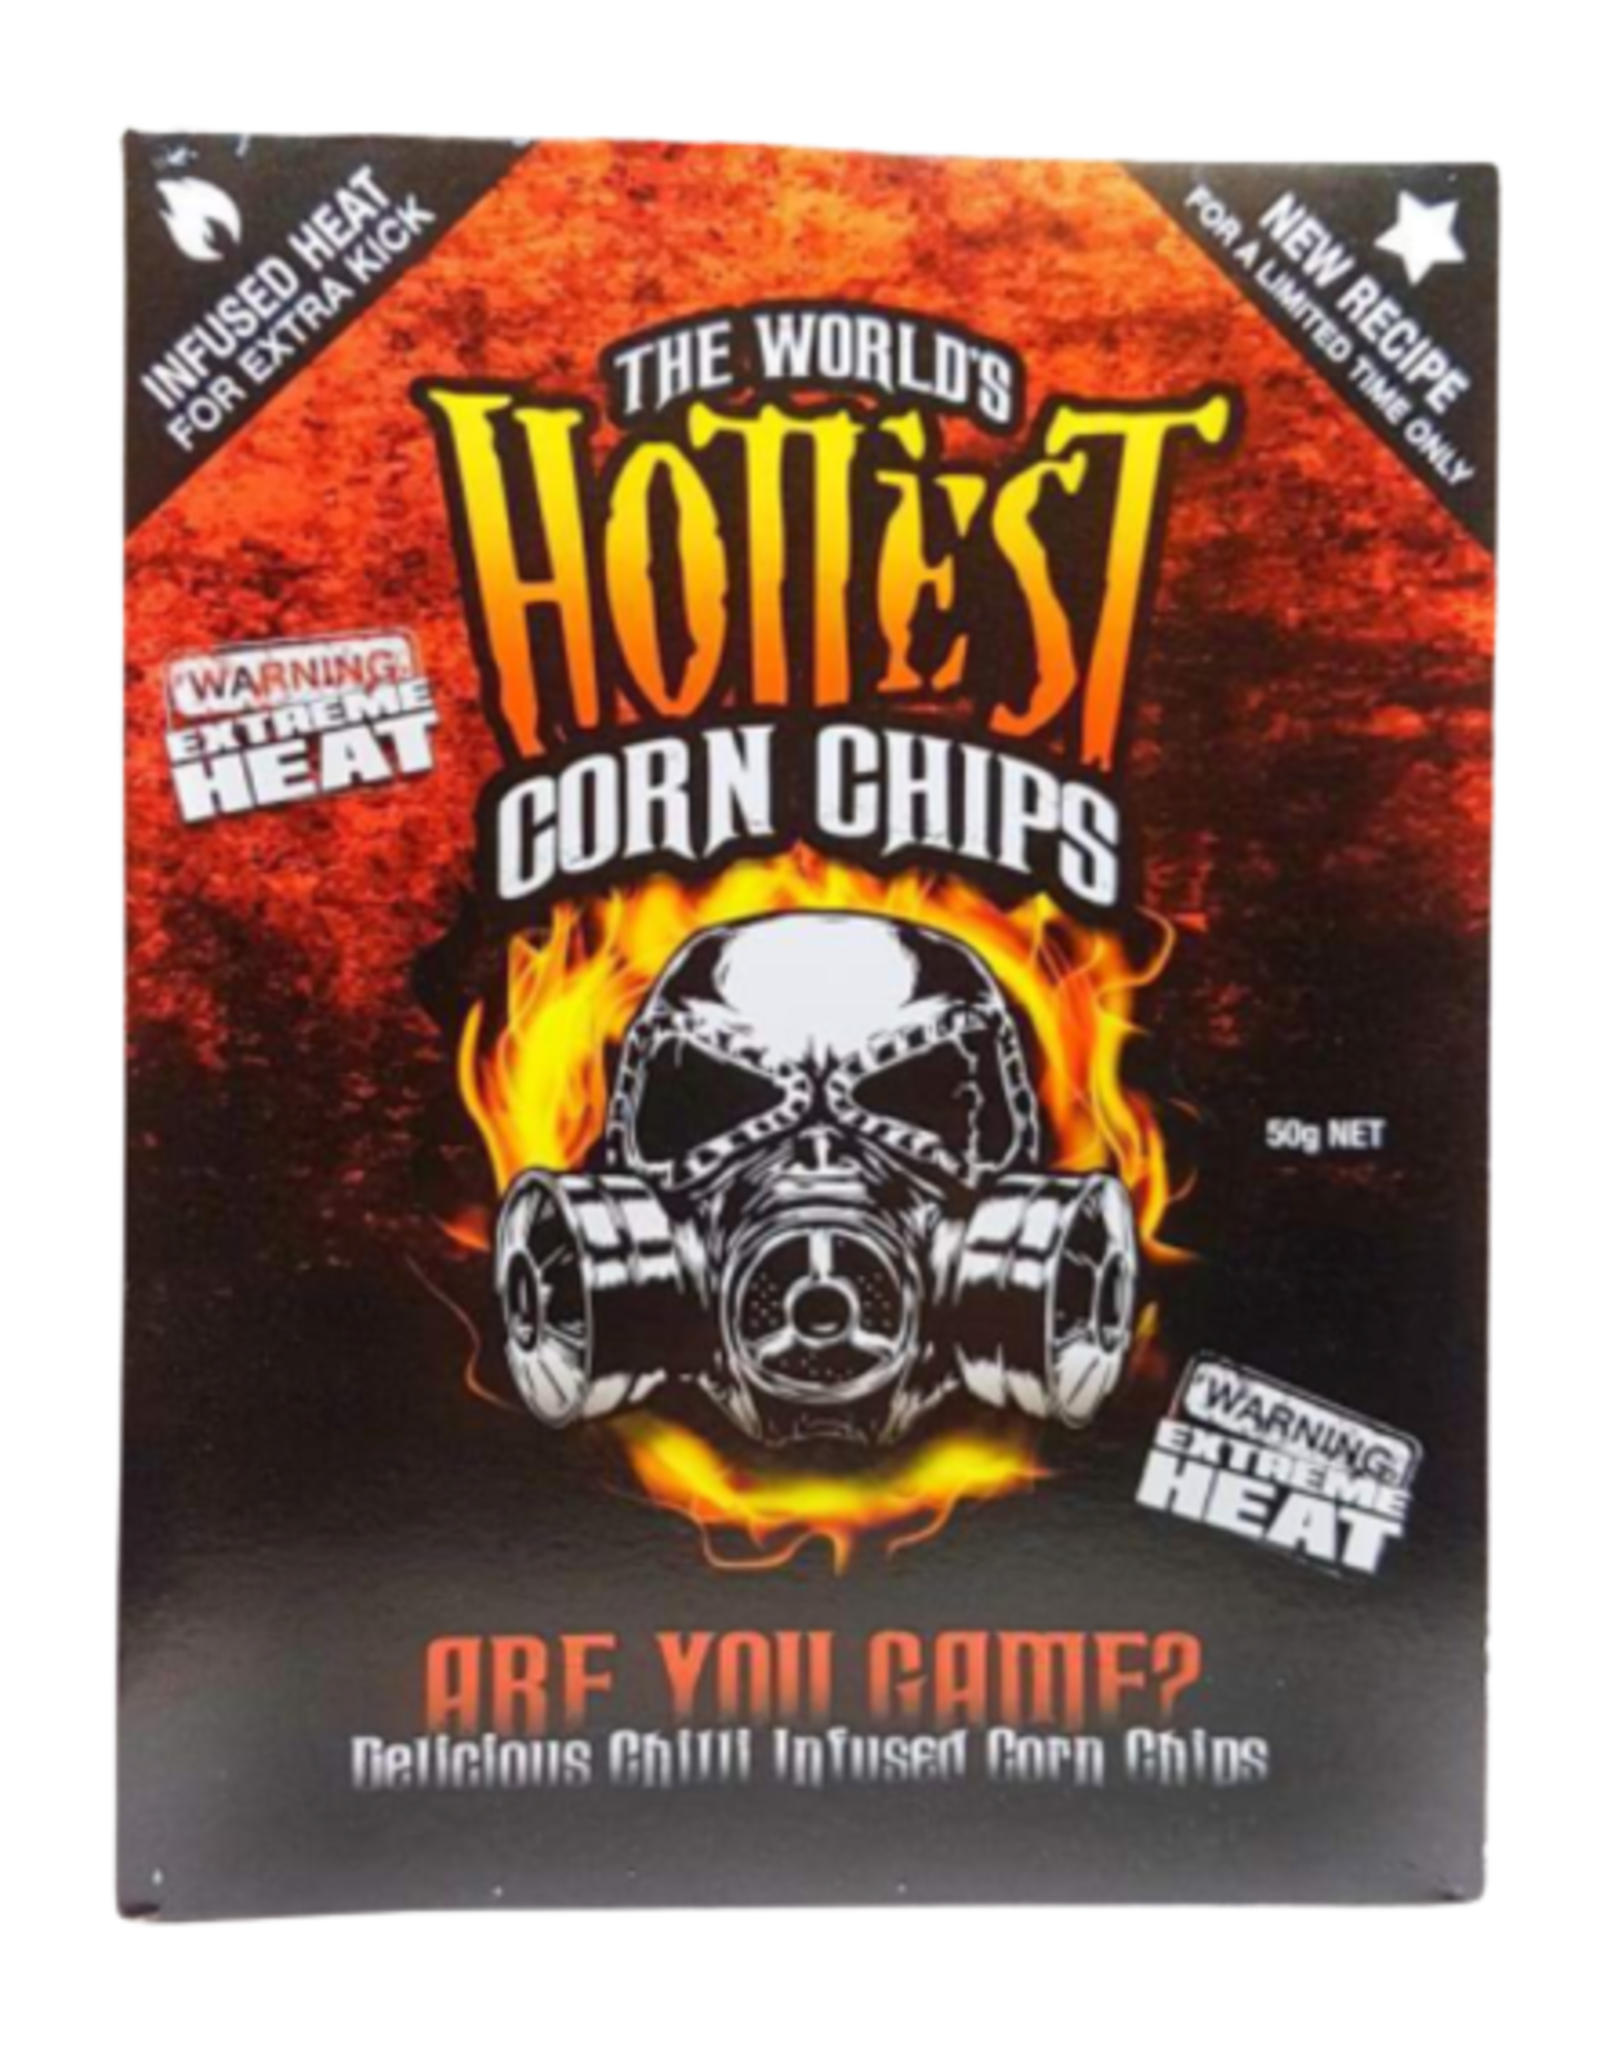 The World's Hottest Corn Chip's